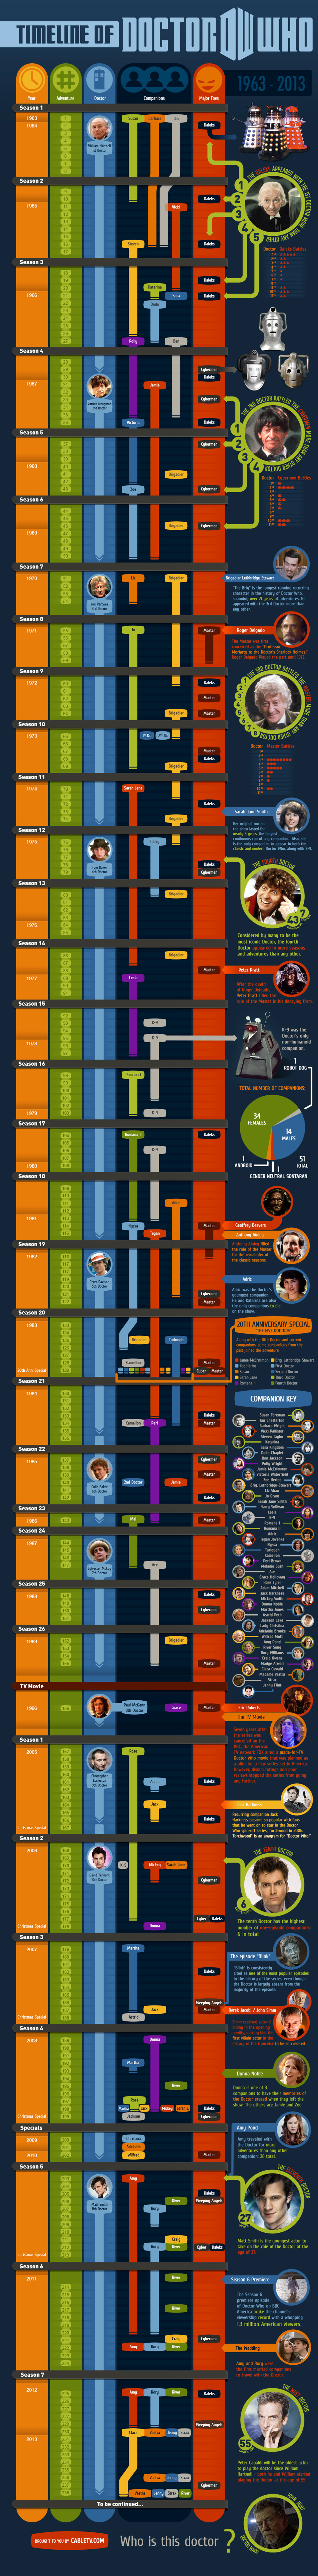 All Doctor Who Episodes in Chronological Order Infographic